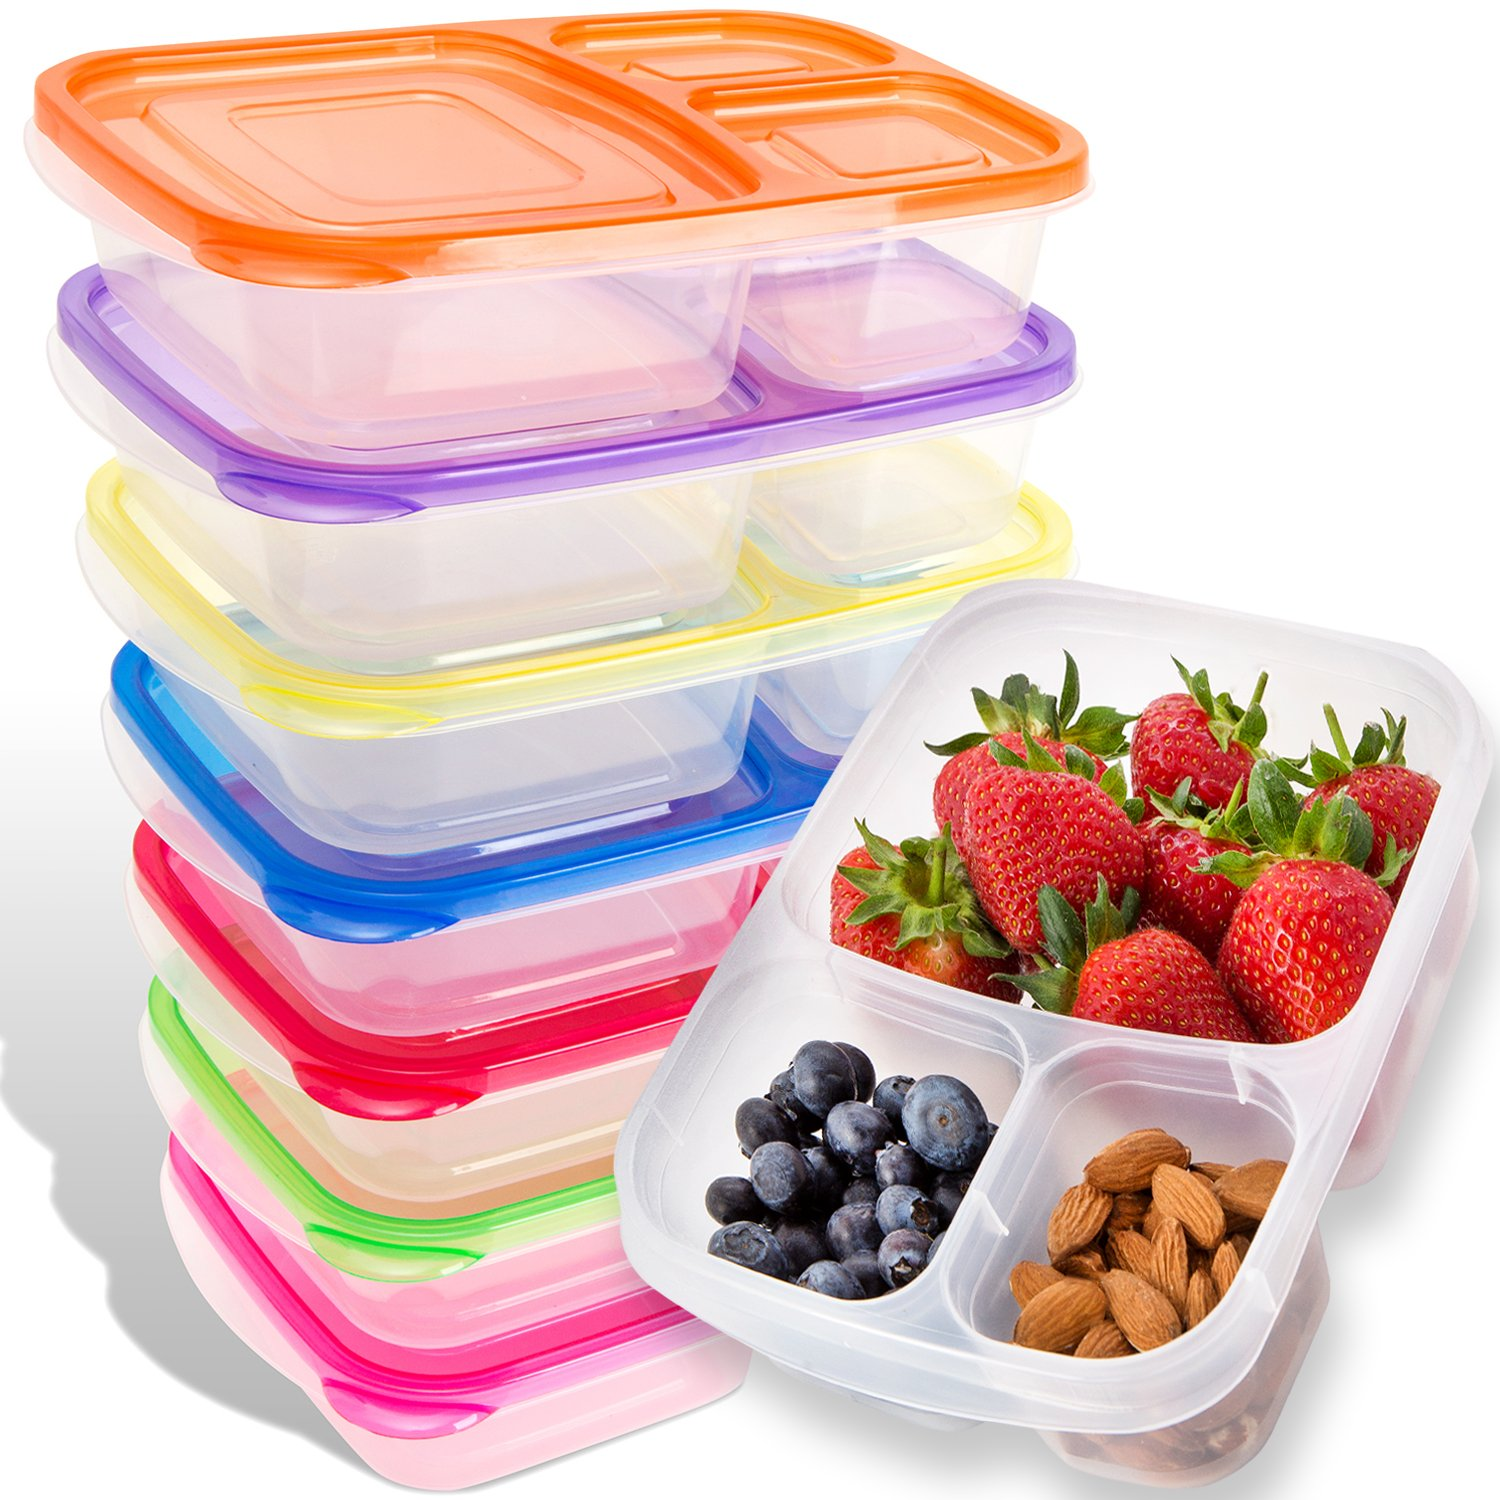 Containers 3 Compartment Container Microwave Dishwasher